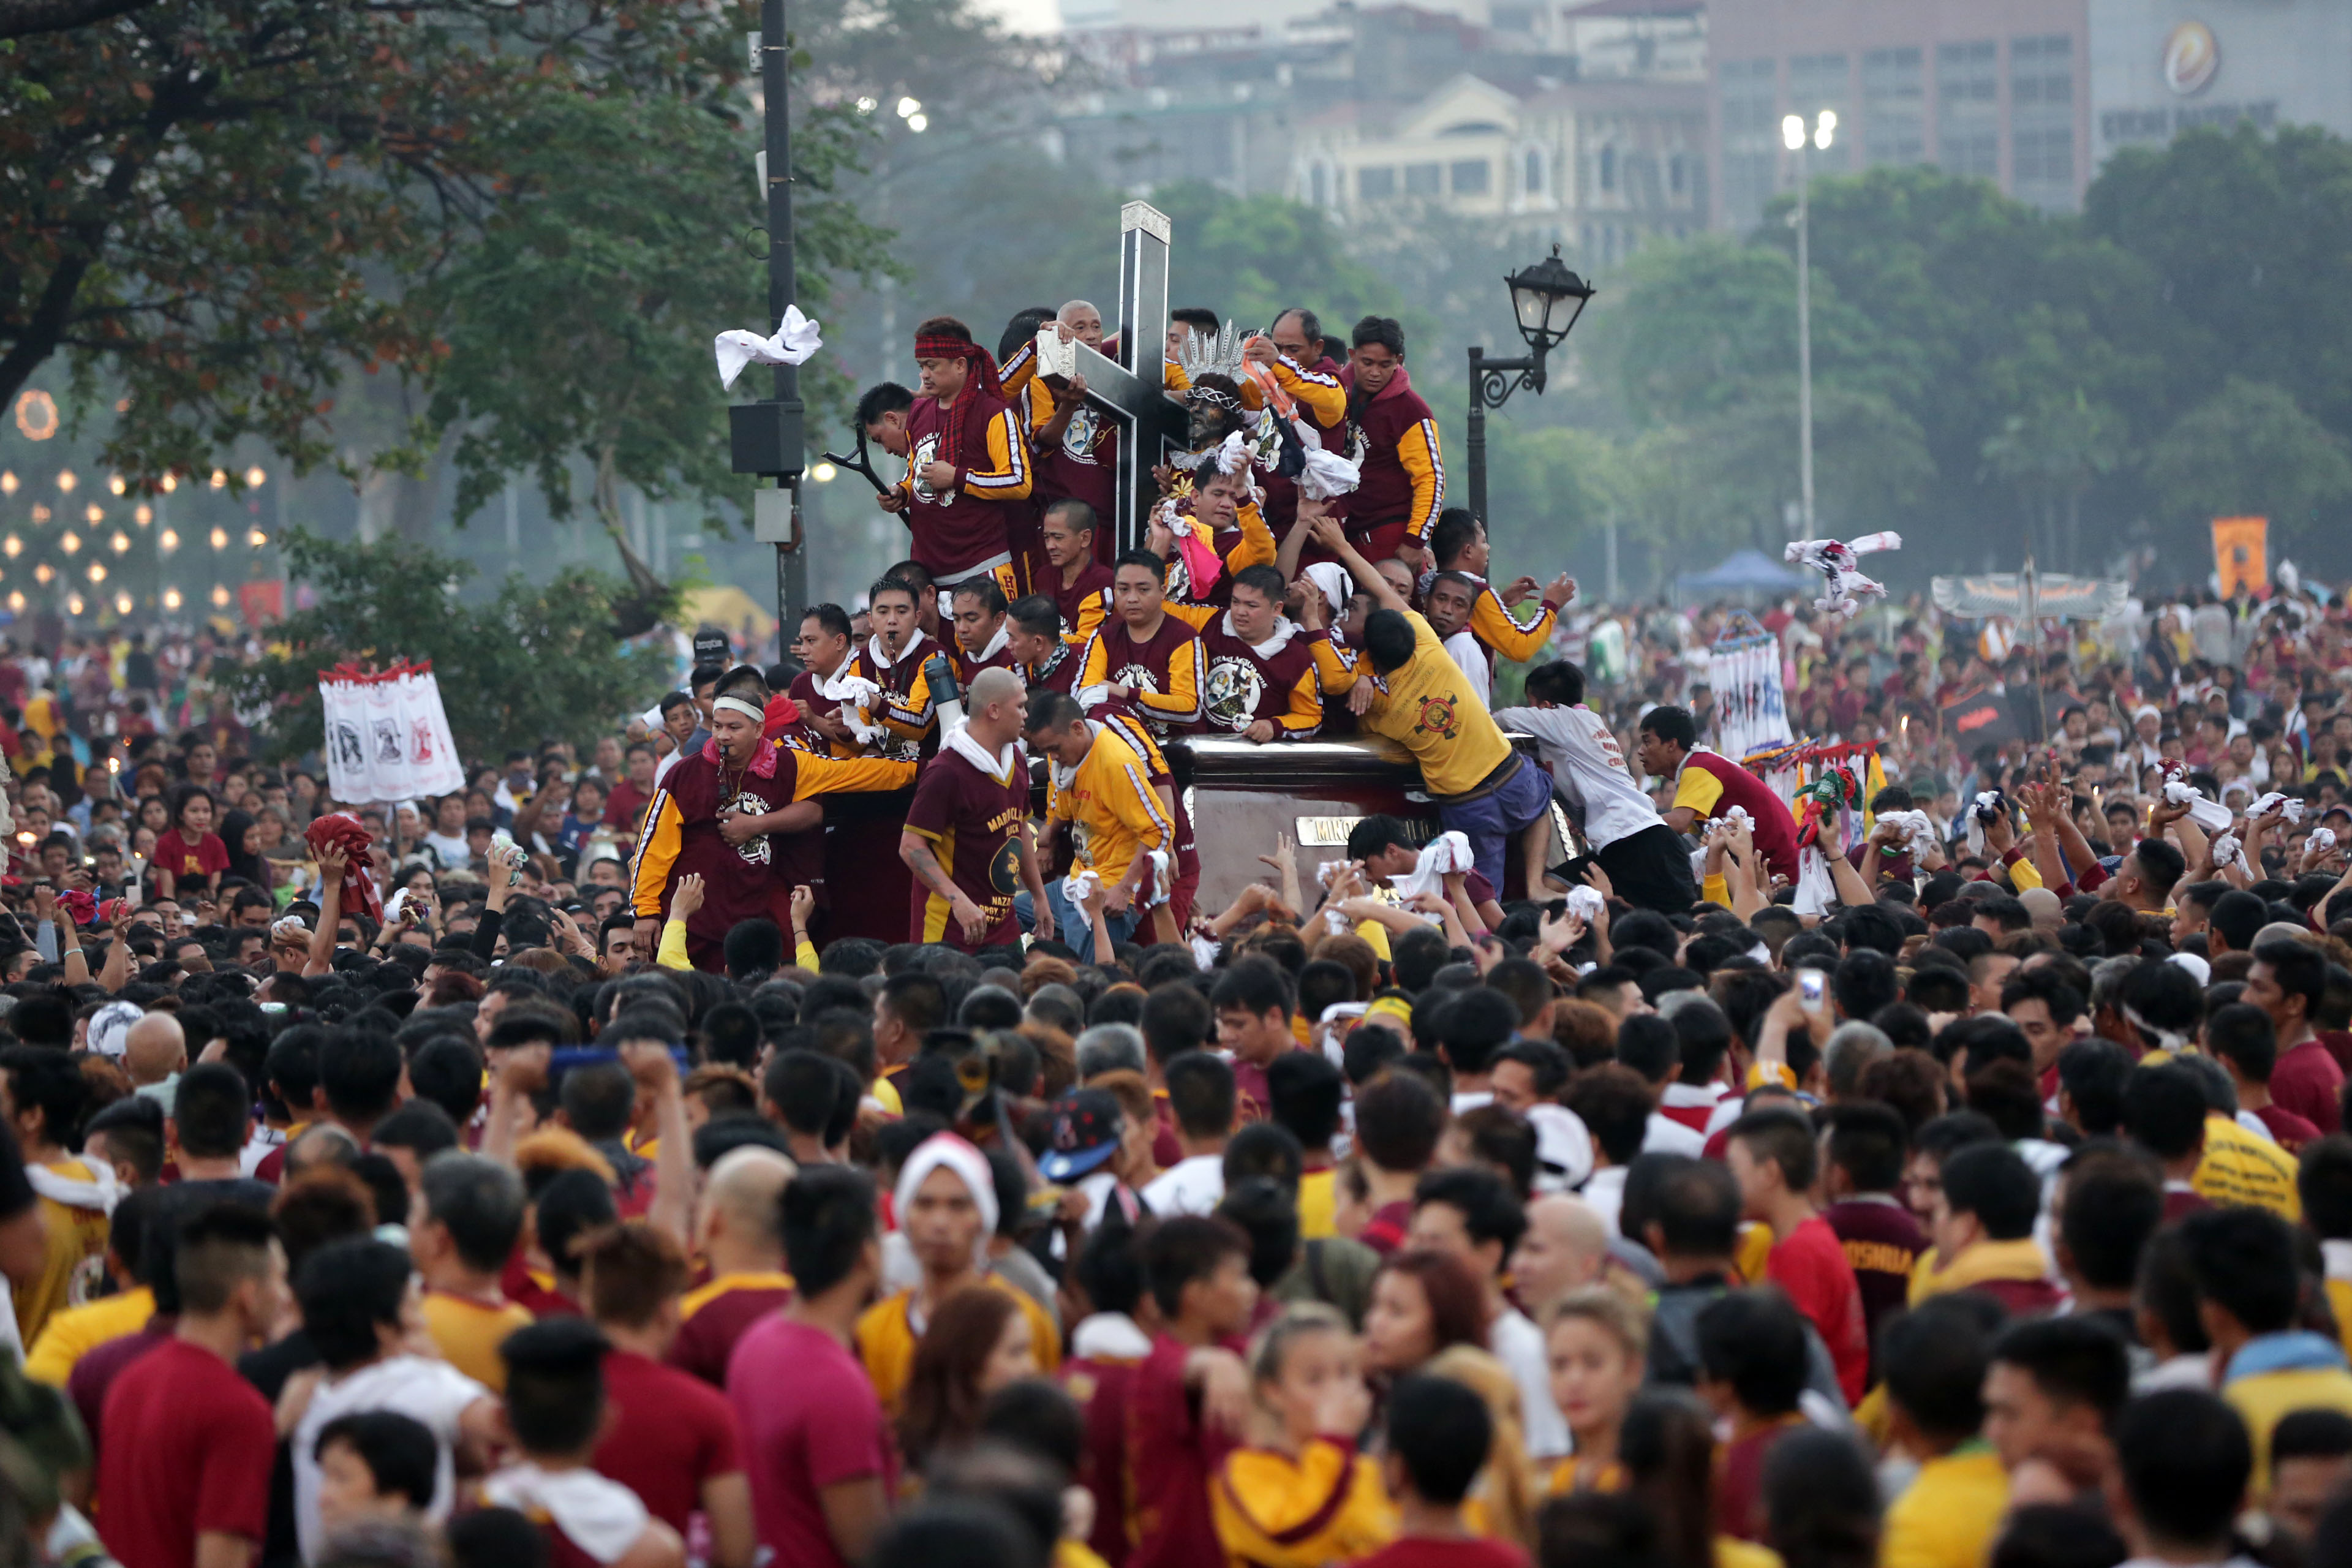 TRASLACION. Devotees try to get near the carriage carrying the image of Jesus of the Black Nazarene as the annual Traslacion starts at the Quirino Grandstand in Manila on Saturday, January 9, 2016. Photo by Ben Nabong/Rappler